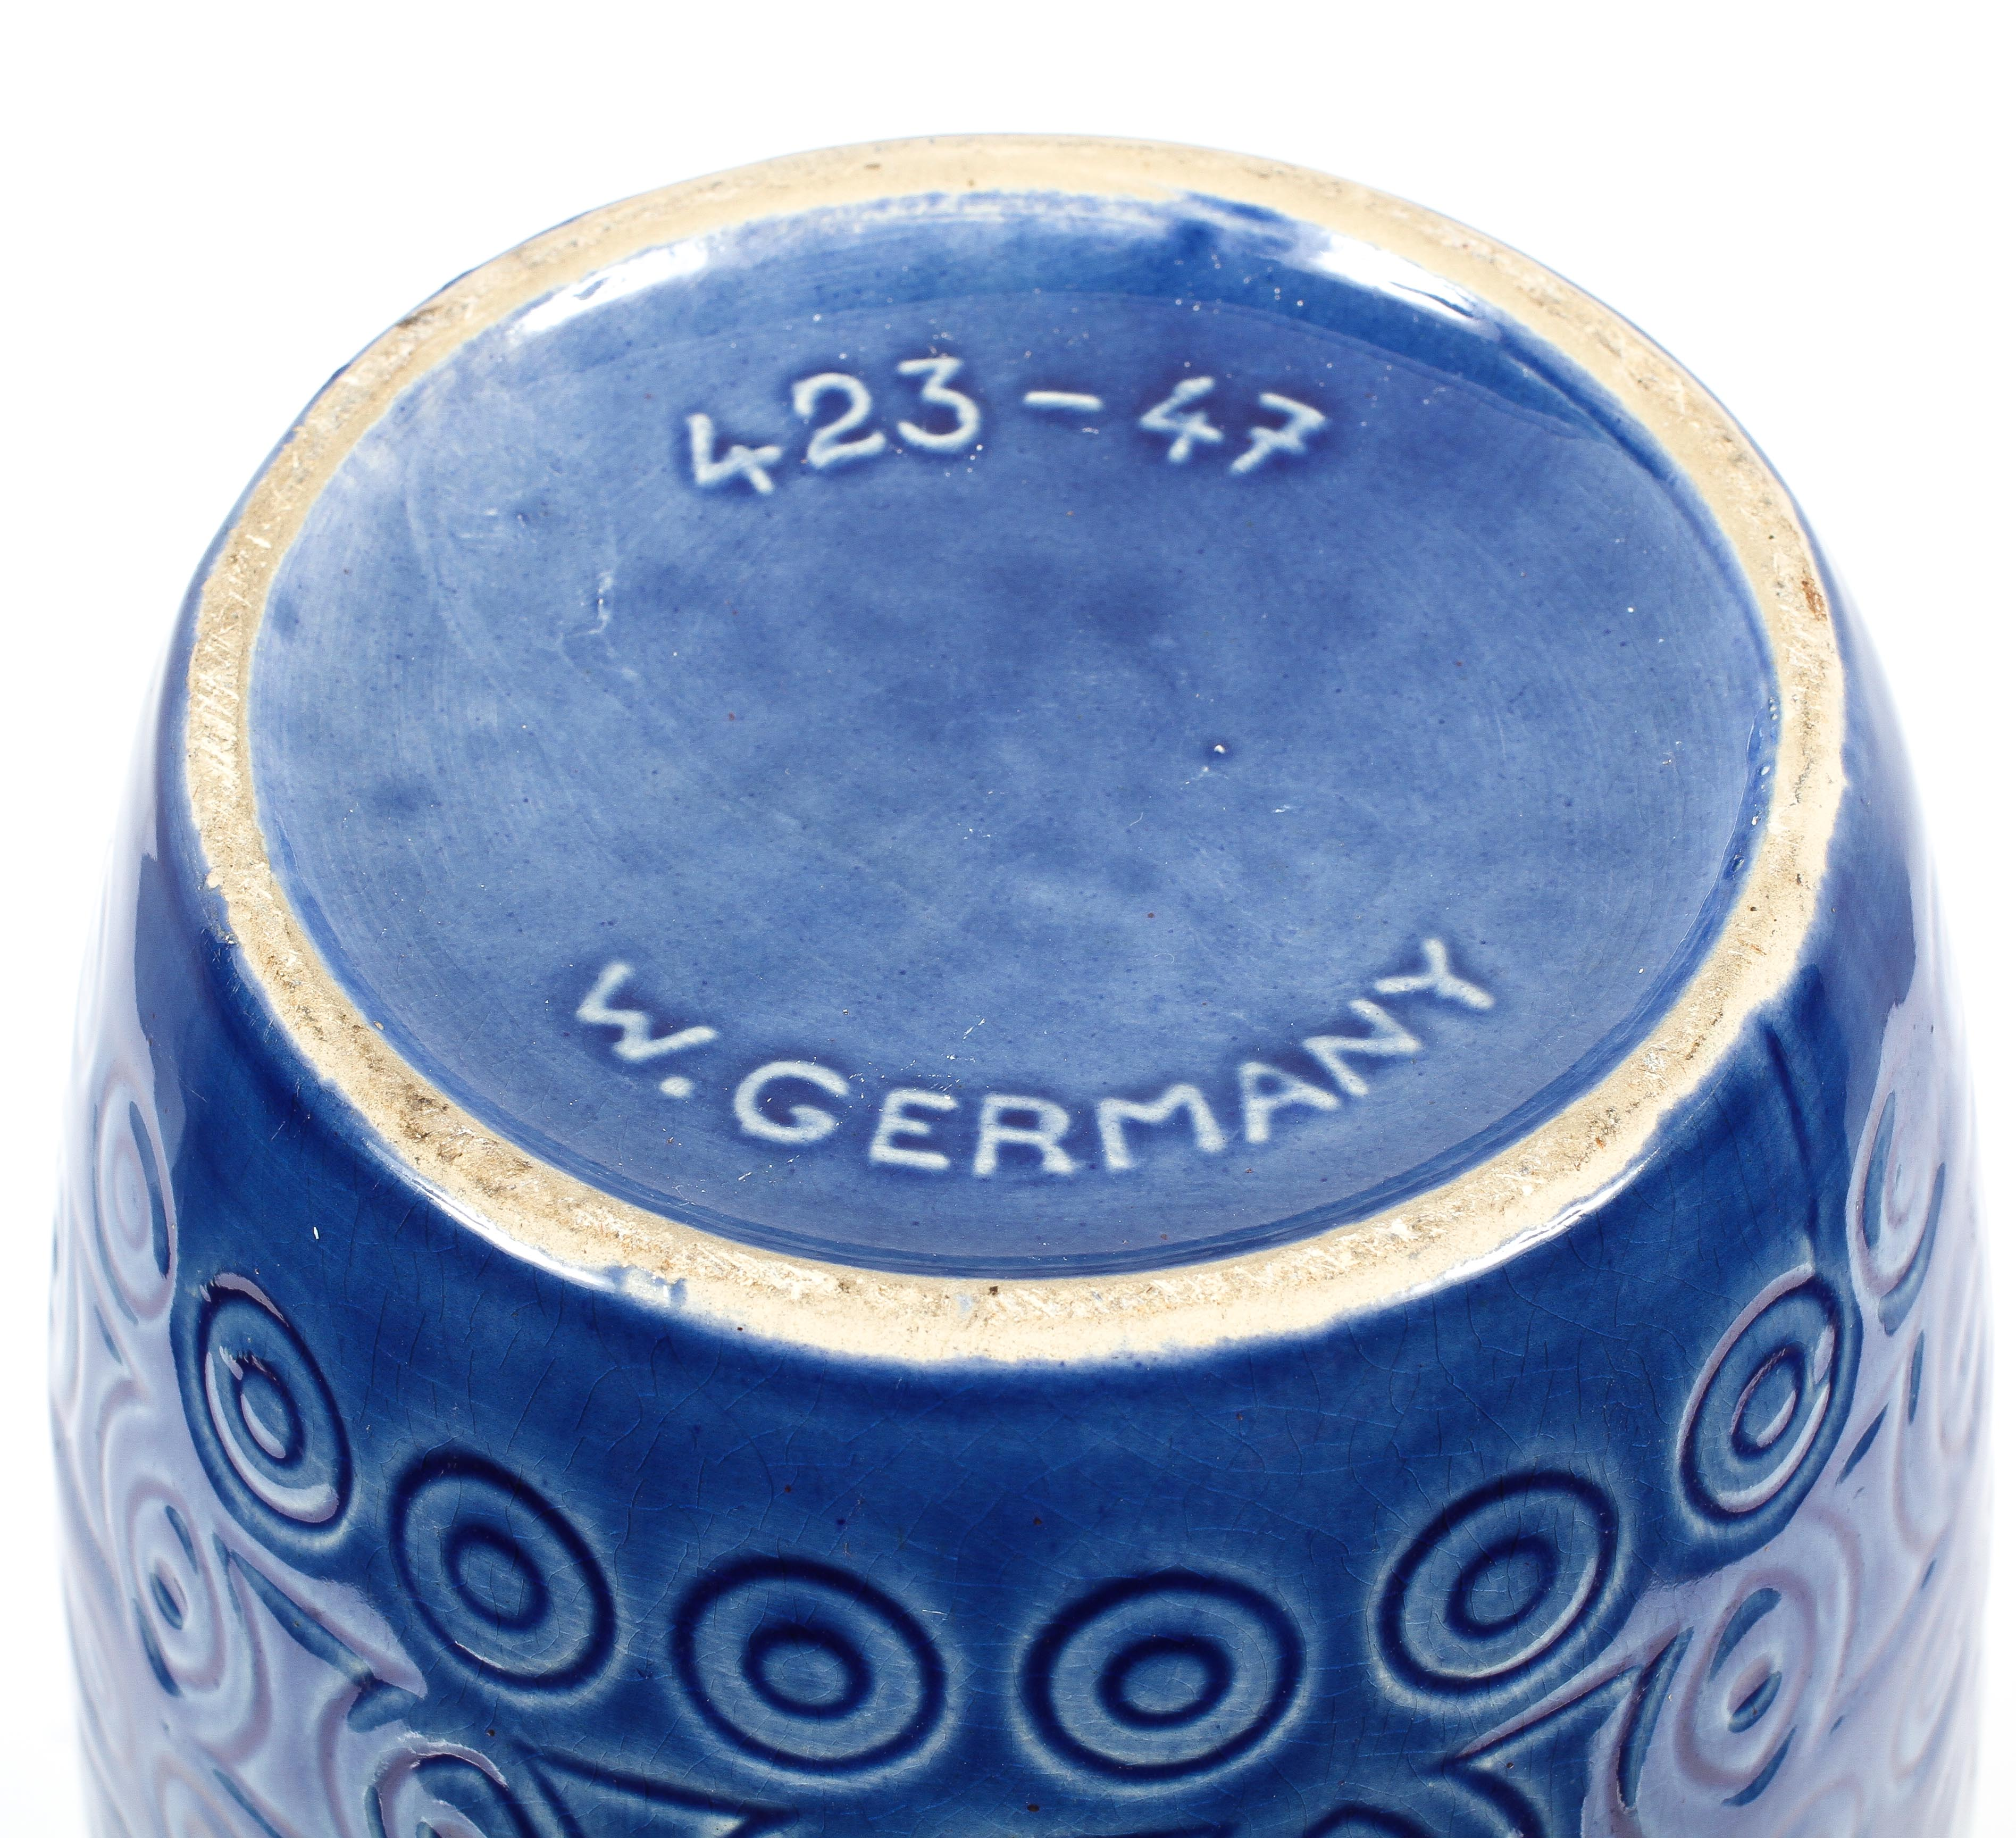 A West German pottery vase, circa 1960, numbered 423-47, - Image 2 of 2